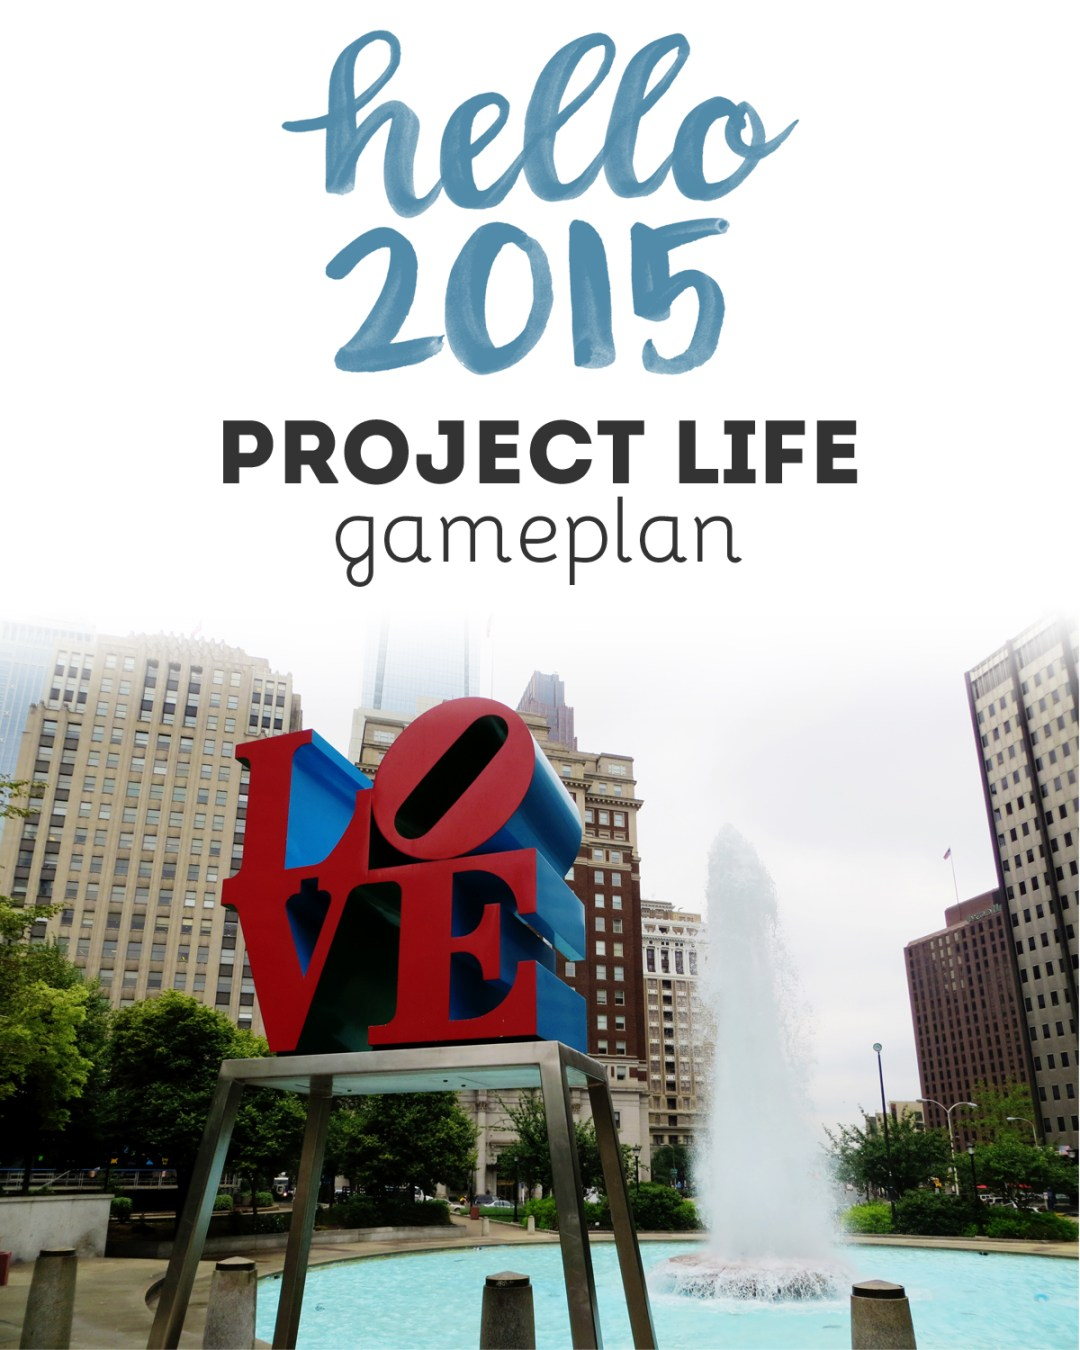 Project Life 2015 Gameplan - www.randomolive.com